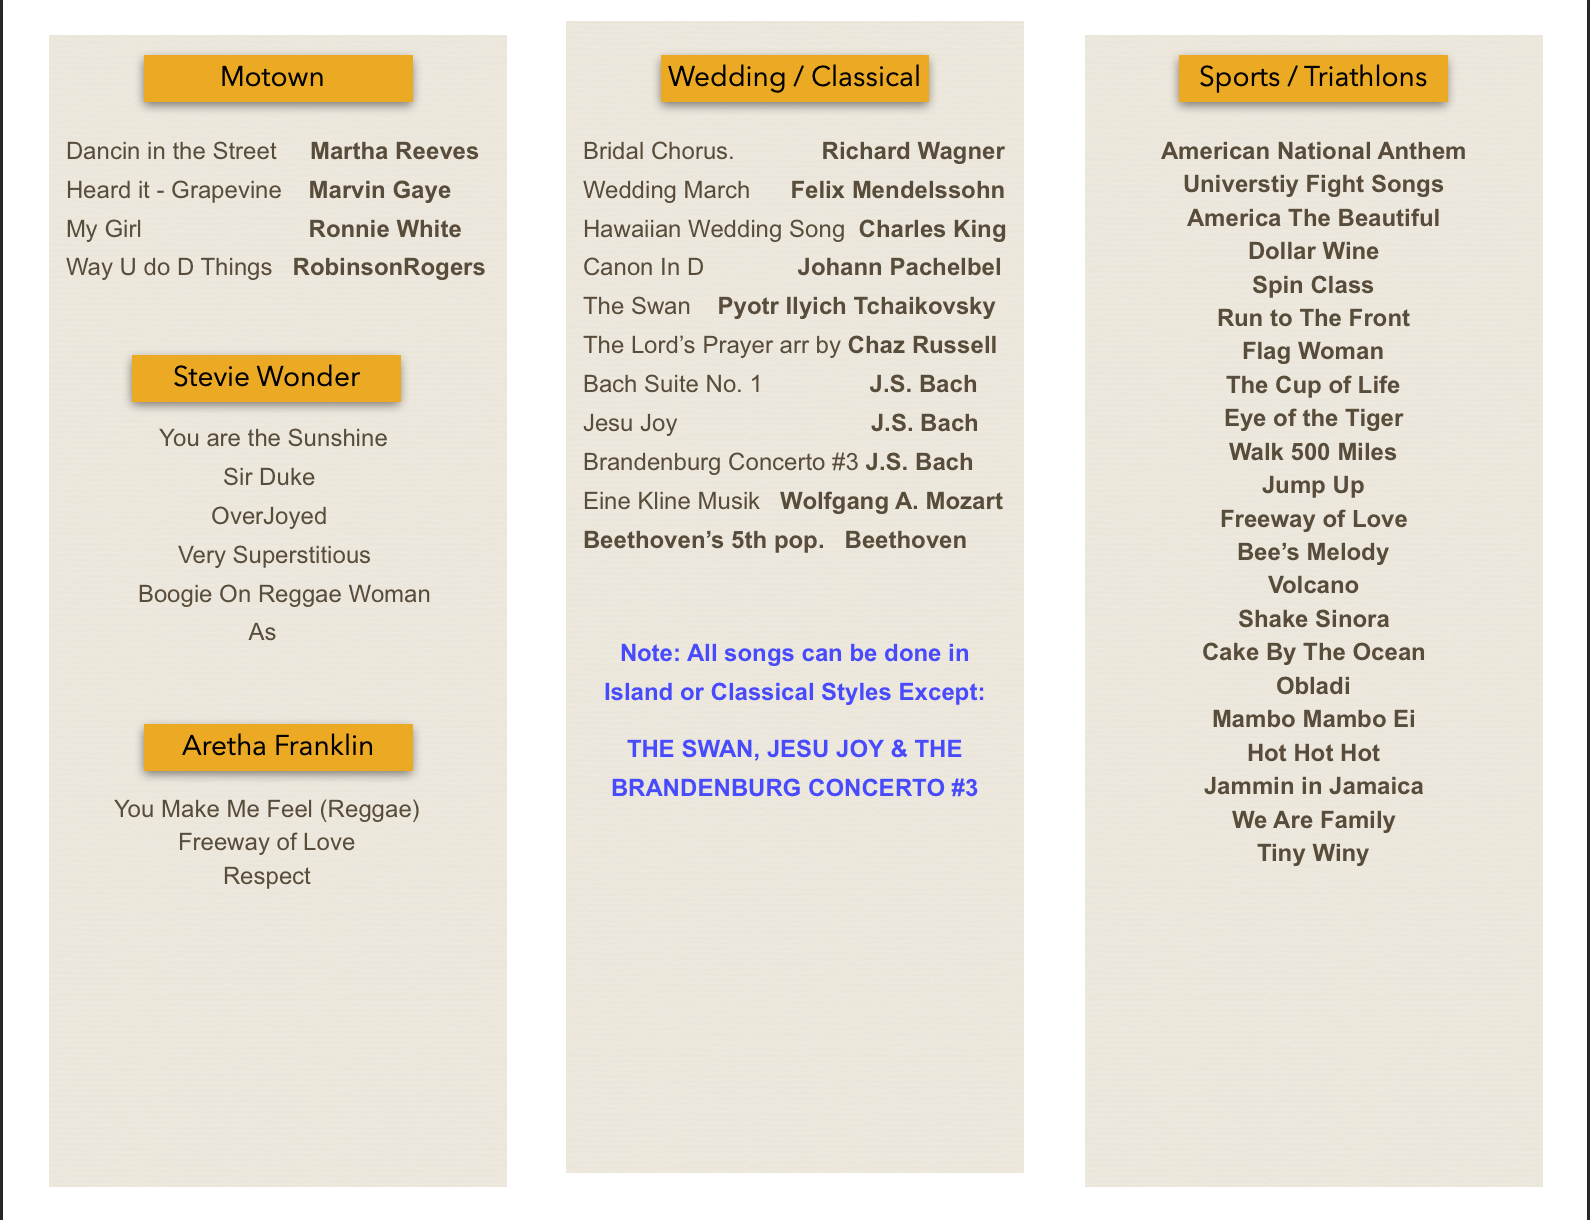 Motown Song List.png